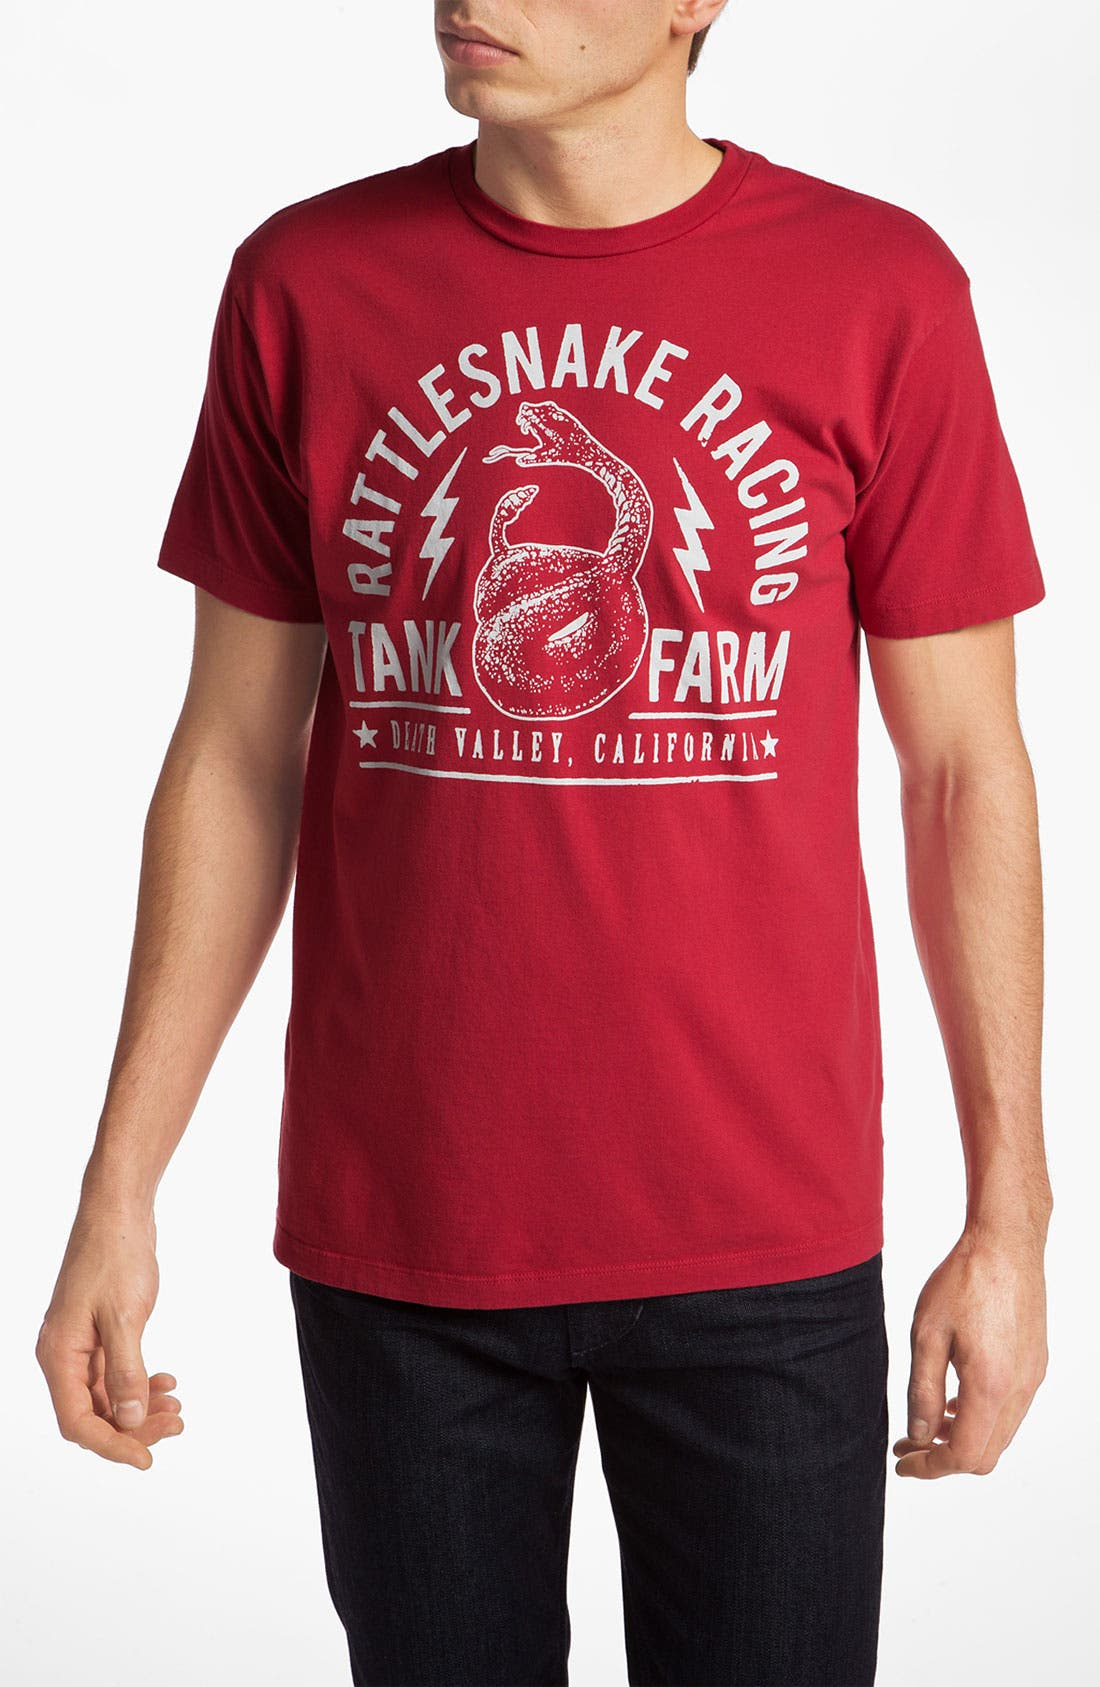 Main Image - Tankfarm 'Rattlesnake Racing' Graphic T-Shirt